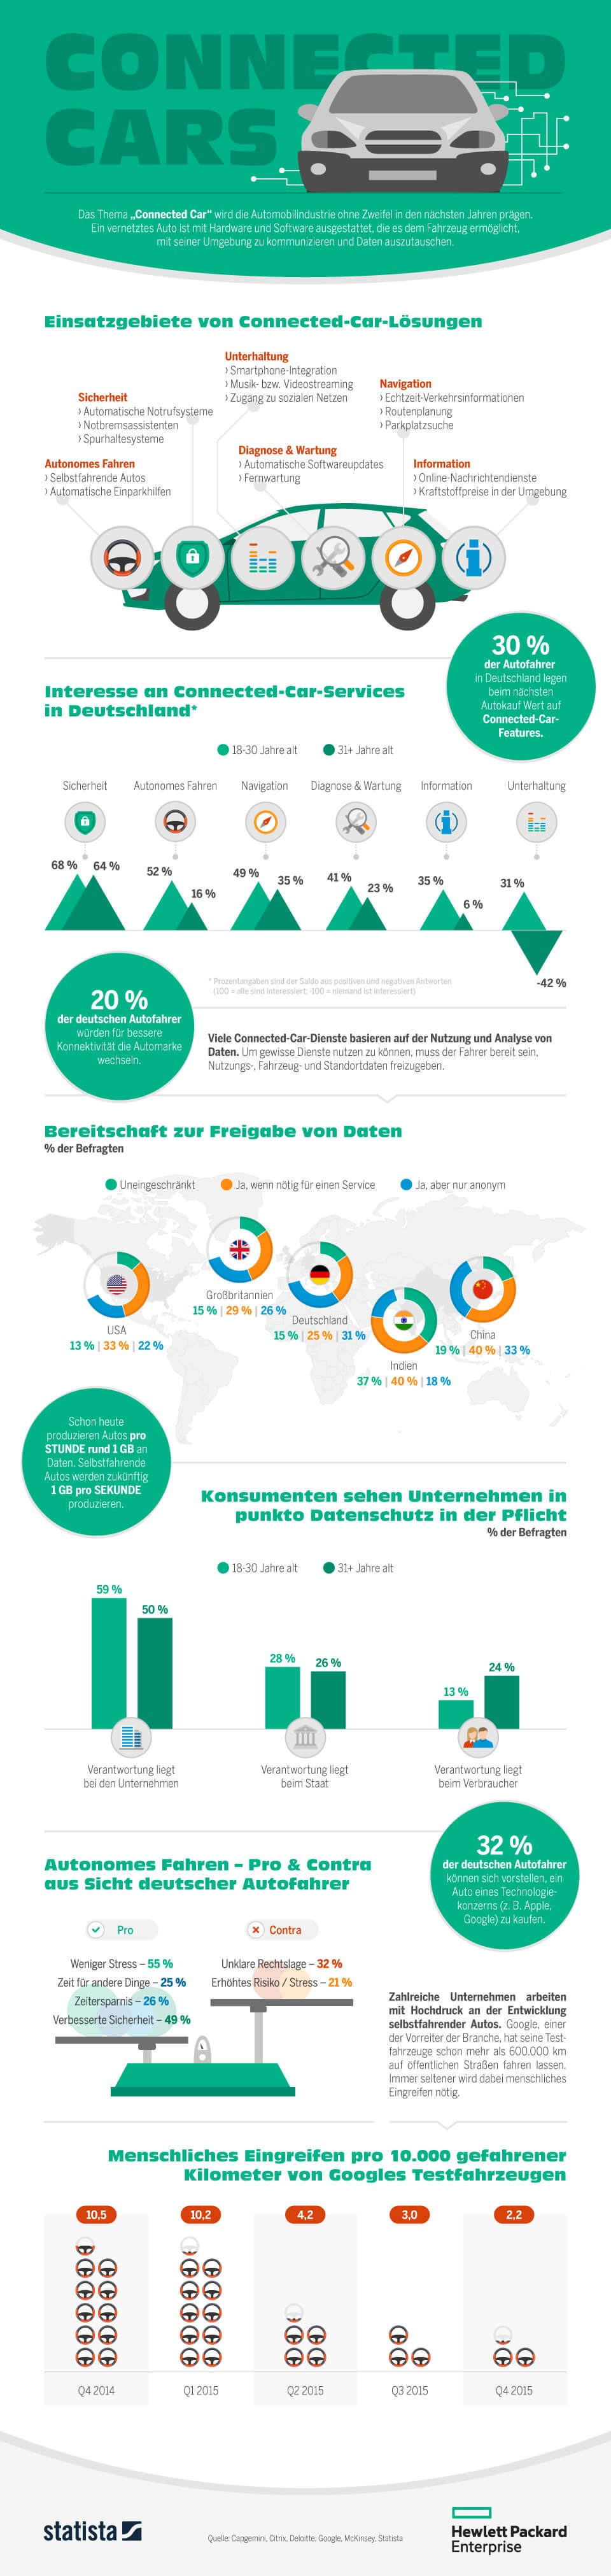 infografik-statista-hp-connect-cars